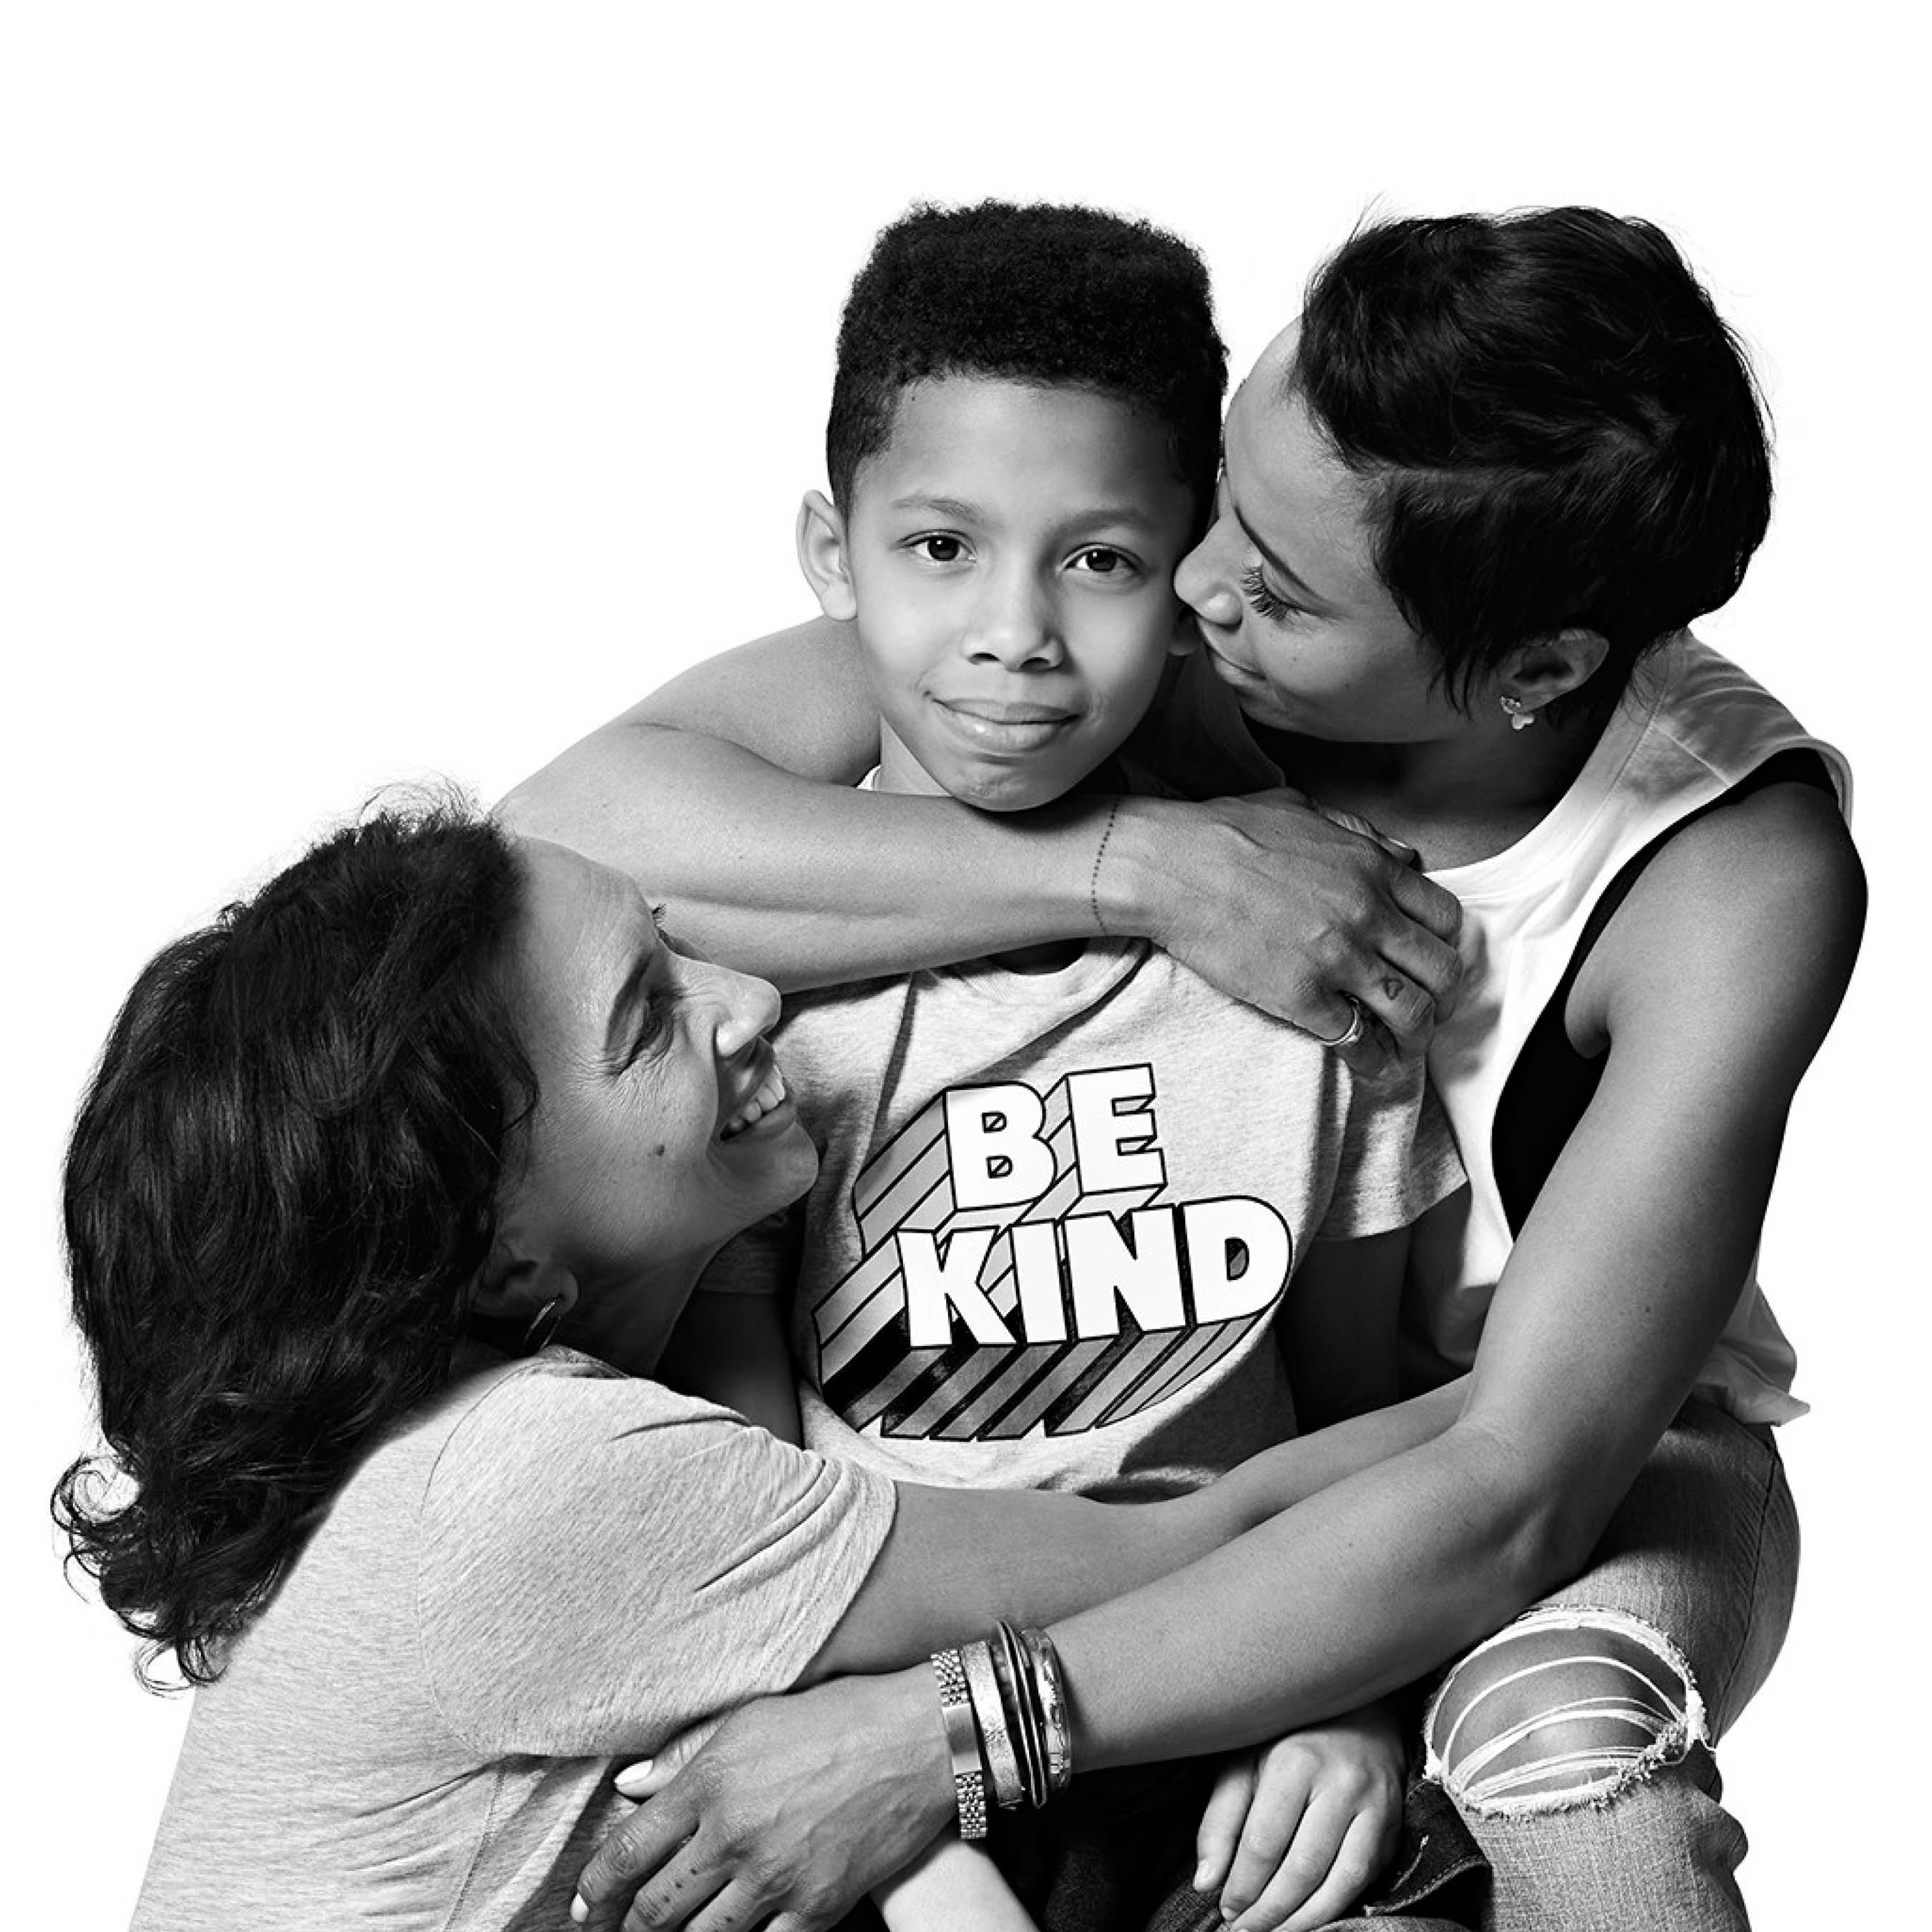 """With a full heart and open mind, we can find love, foster love -- and be love."" - author, social activist, and mother @jodiepatterson with her mother Jamelle and her transgender son Penel"